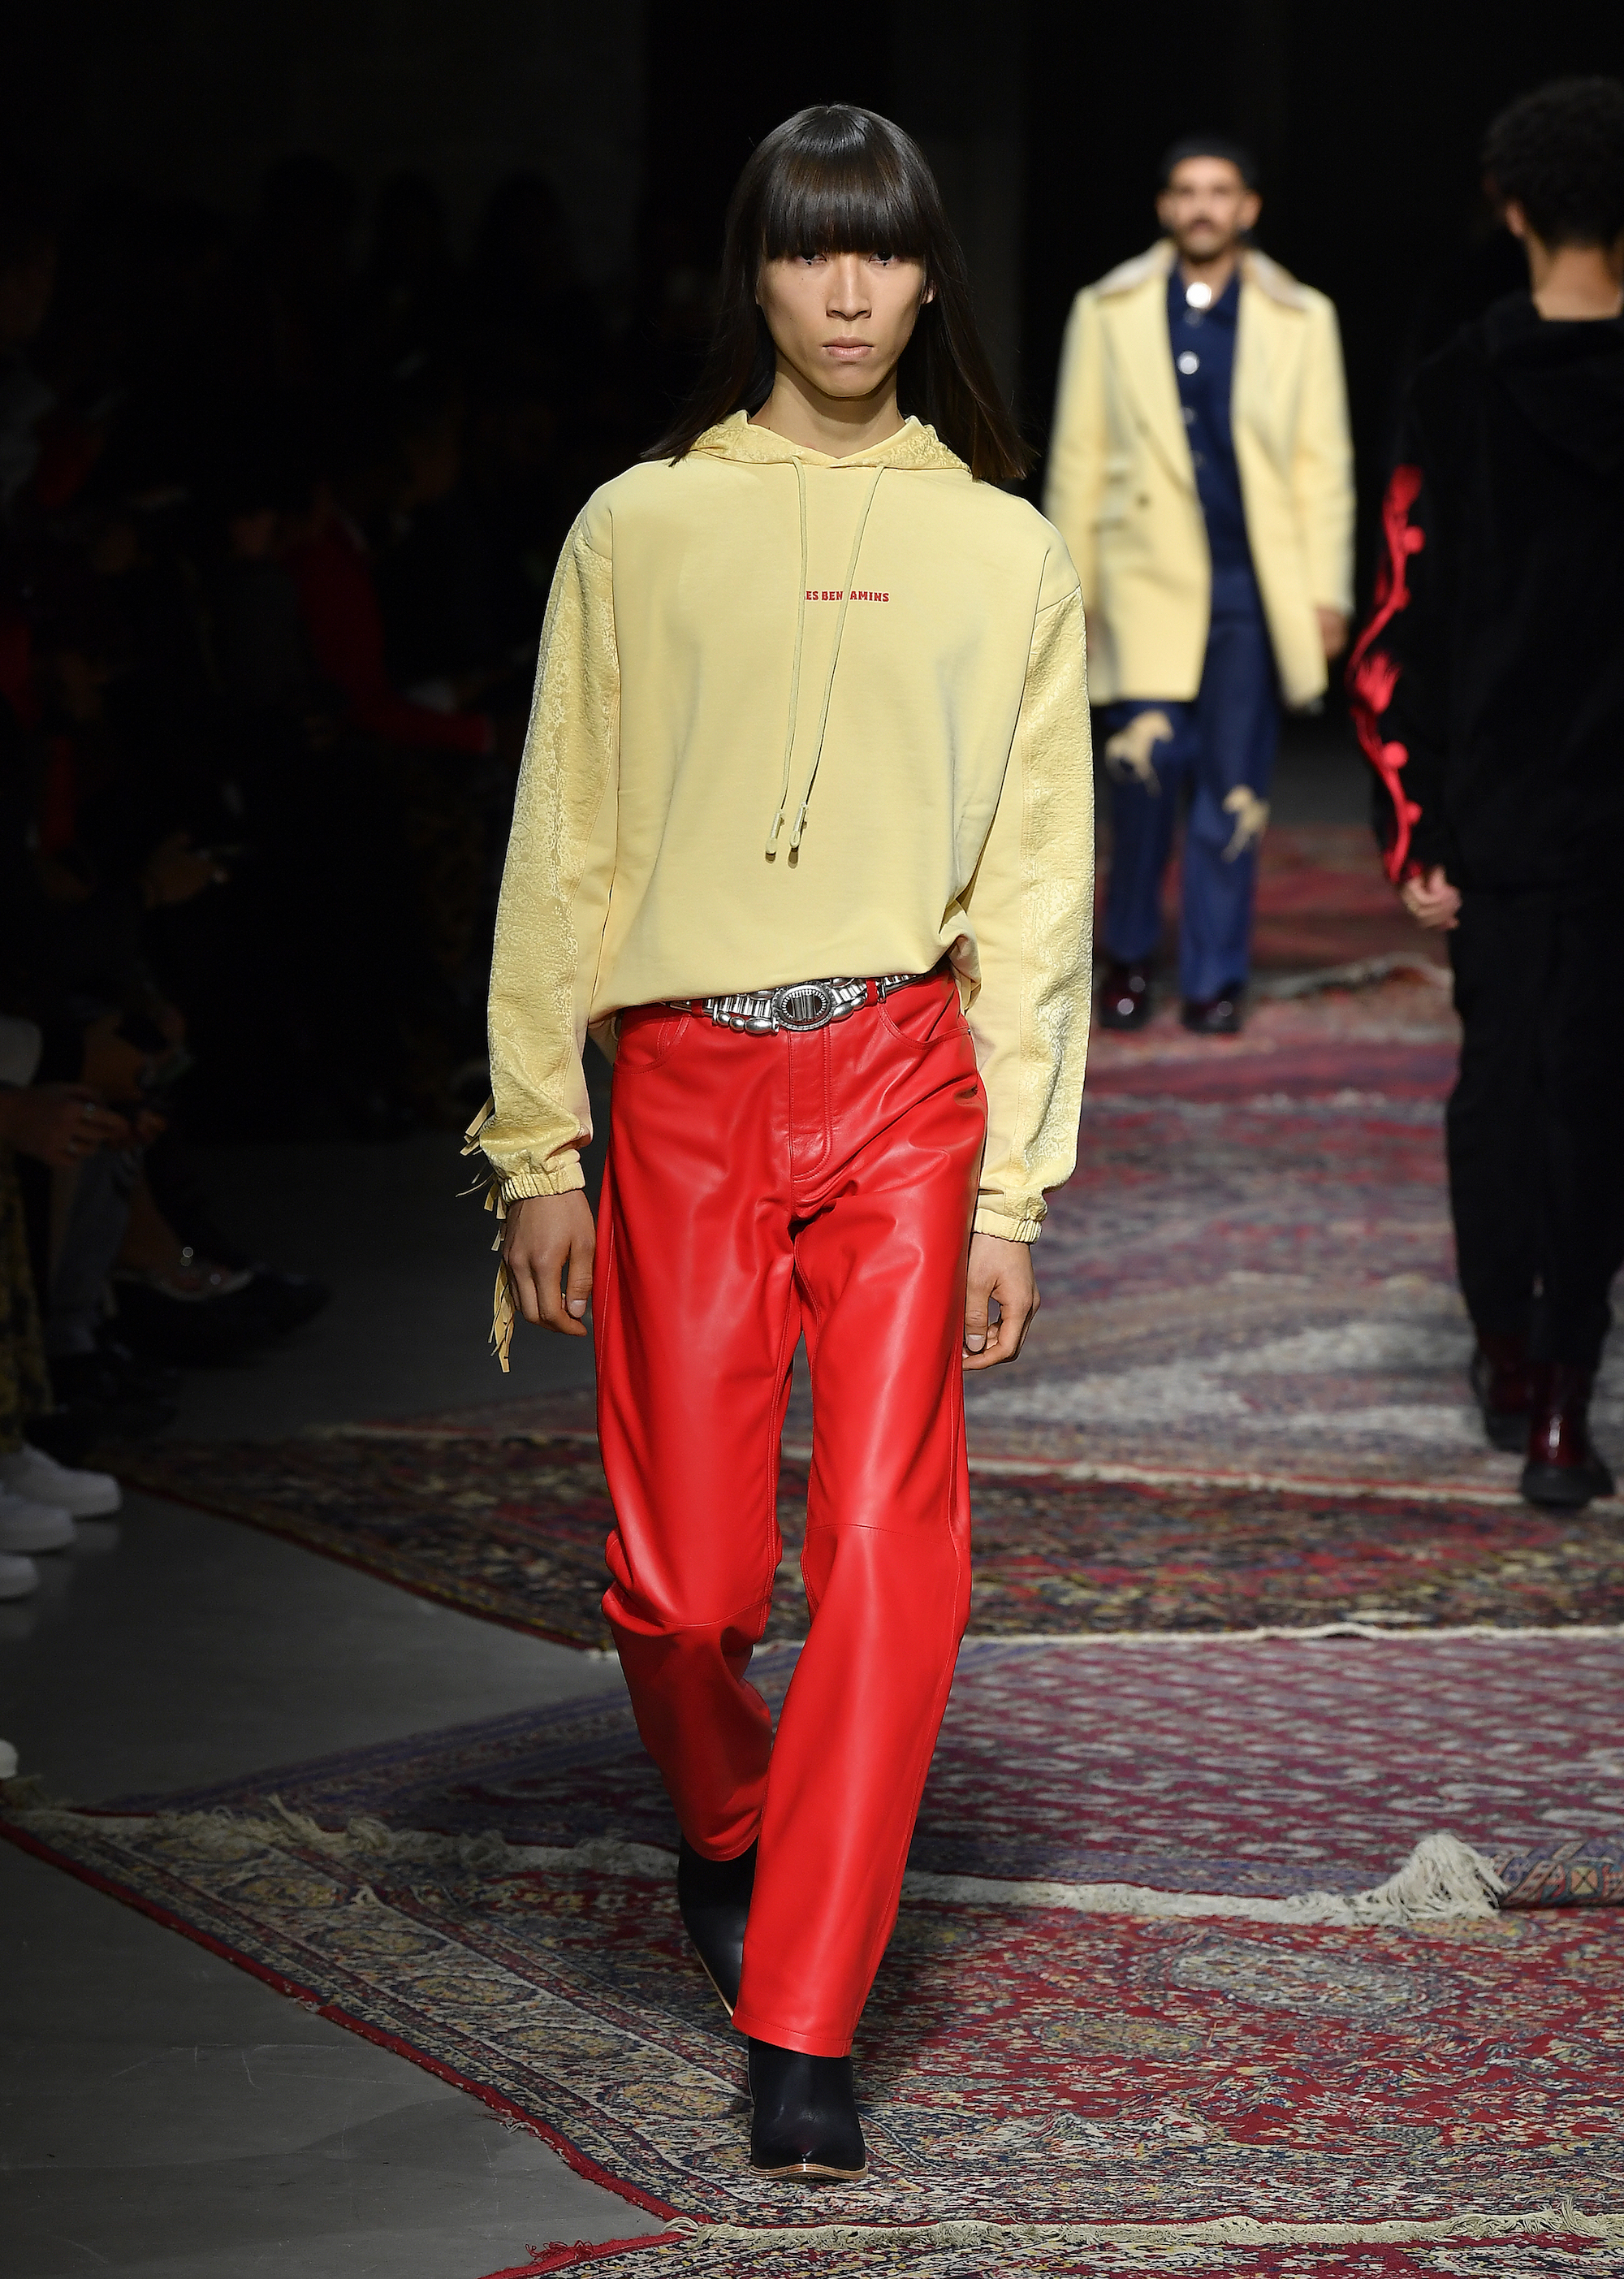 A model walks the runway during Les Benjamins Menswear Fall/Winter 2020-2021 show as part of Paris Fashion Week on January 17, 2020 in Paris, France - red leather trousers